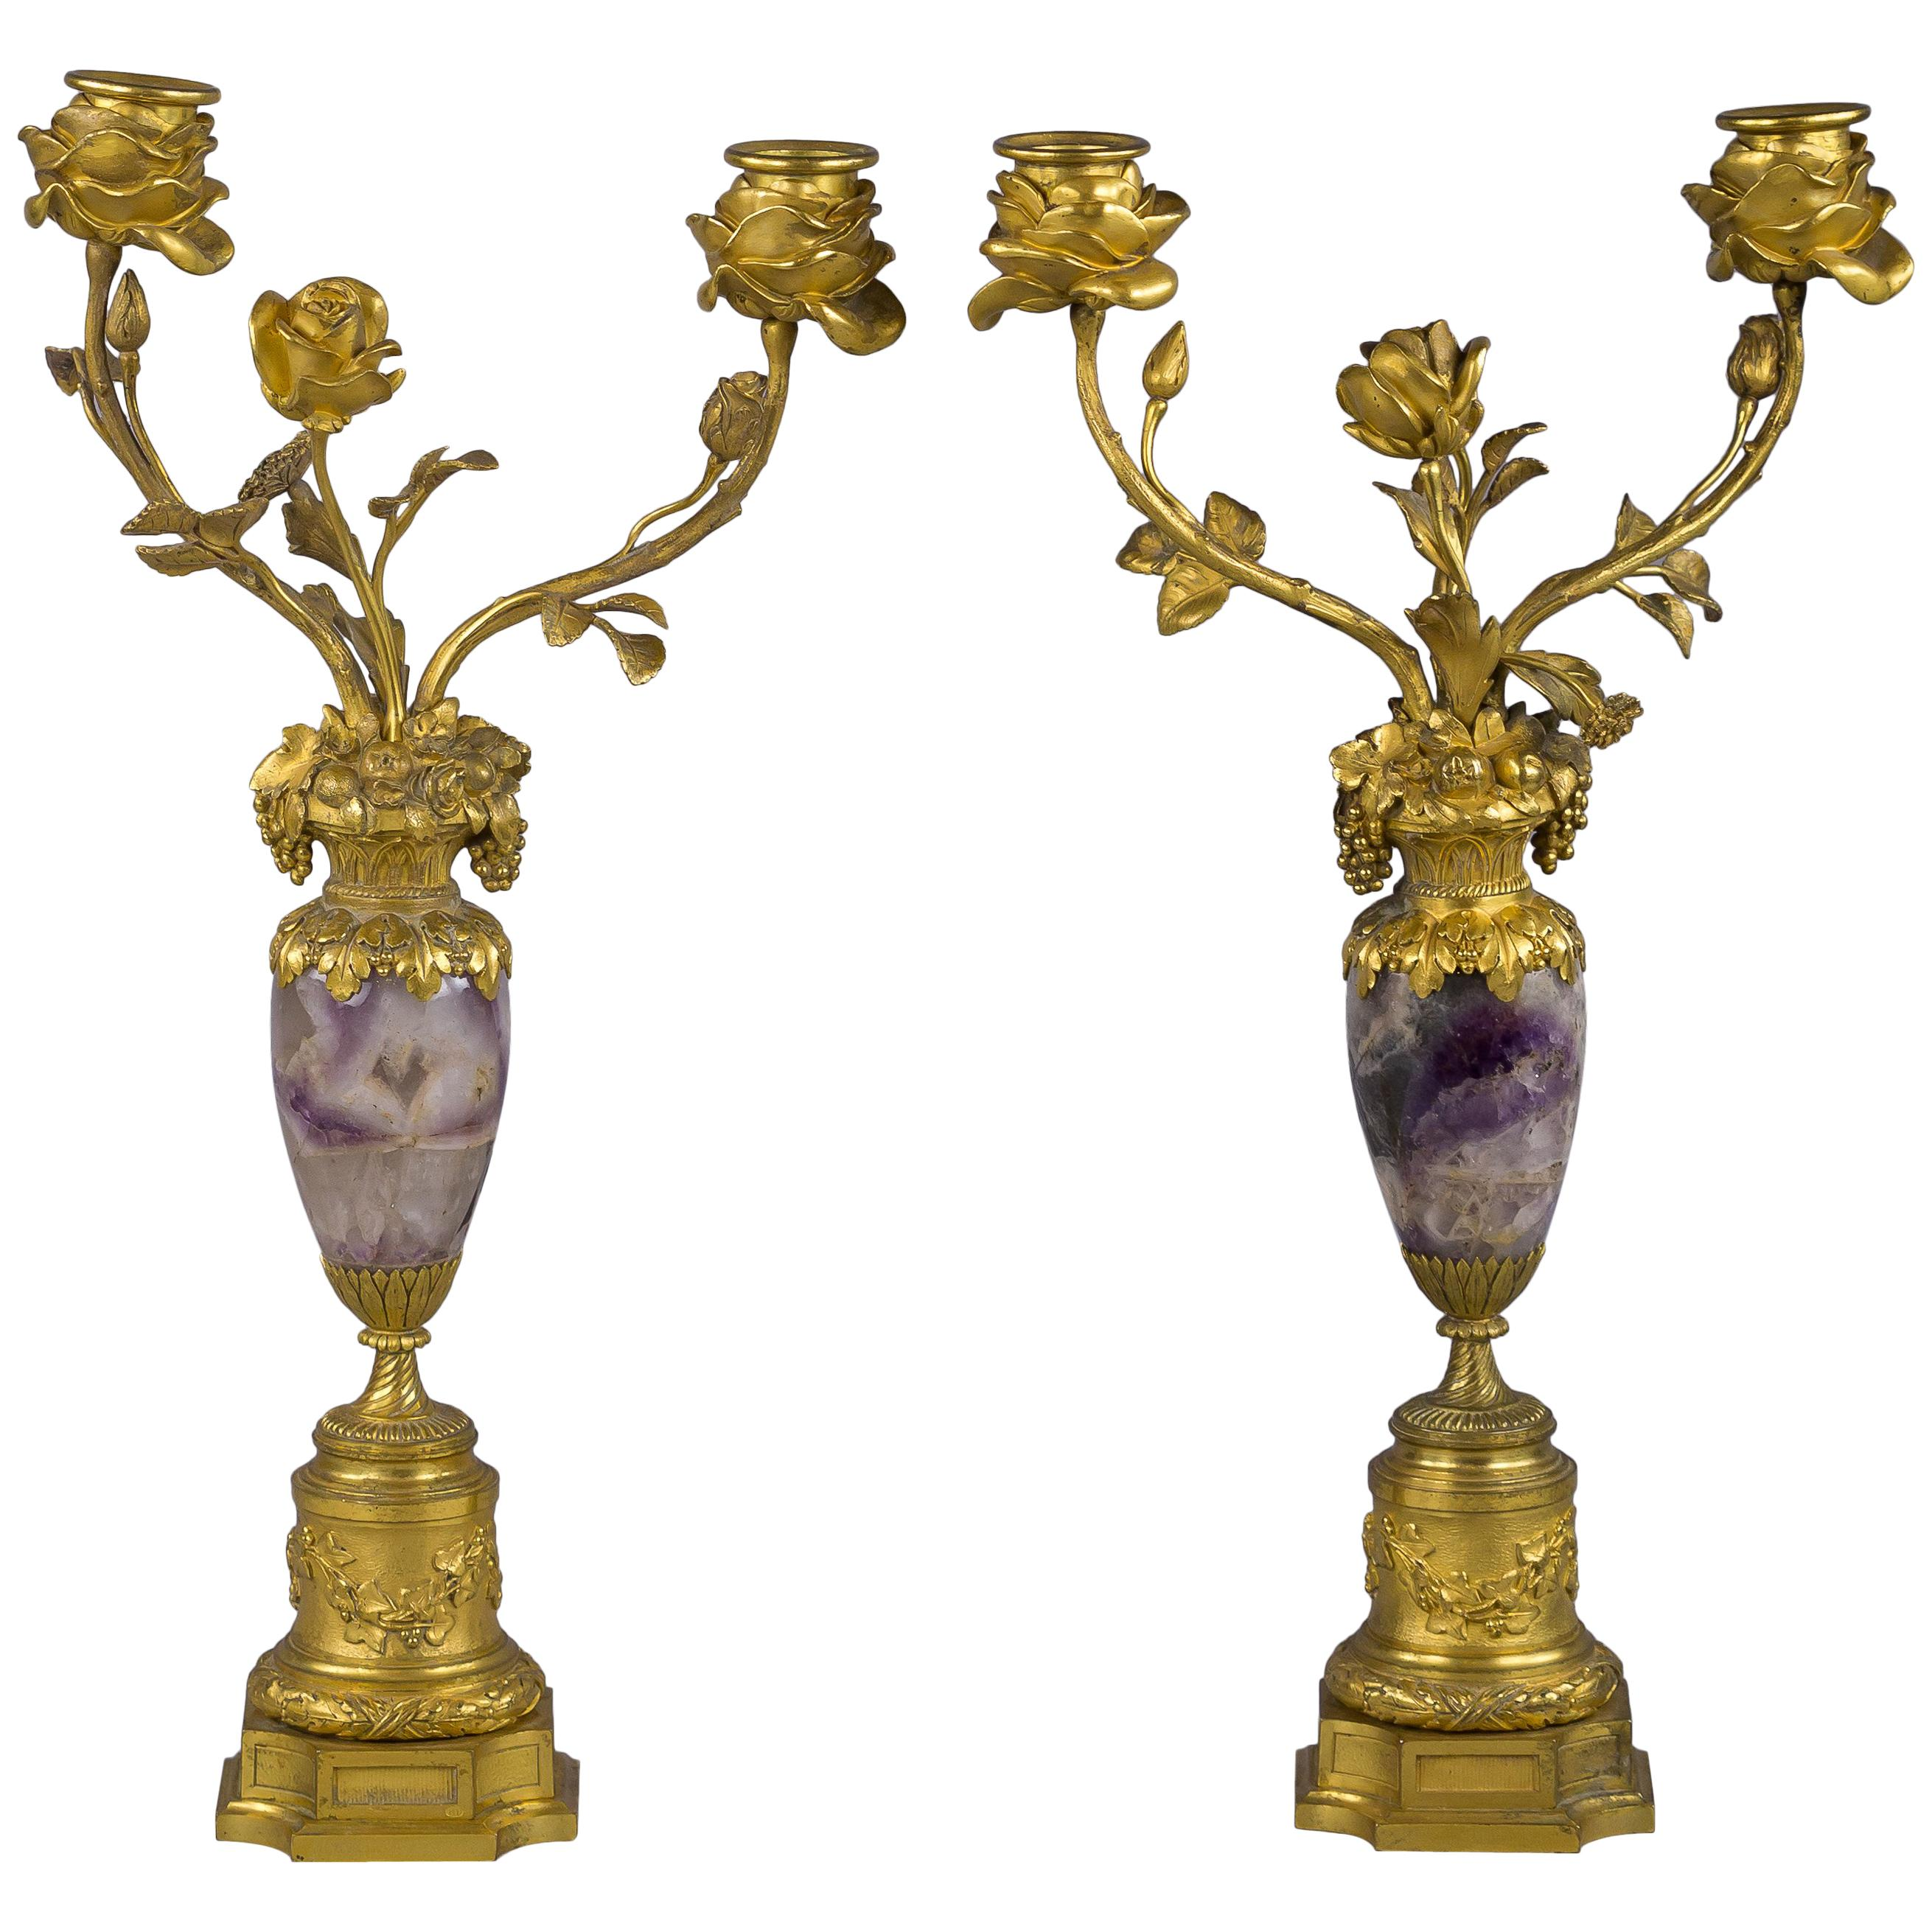 Earnest Pair Brass Bronze Twisted Dolphin Candlesticks Collectibles Decorative Collectibles